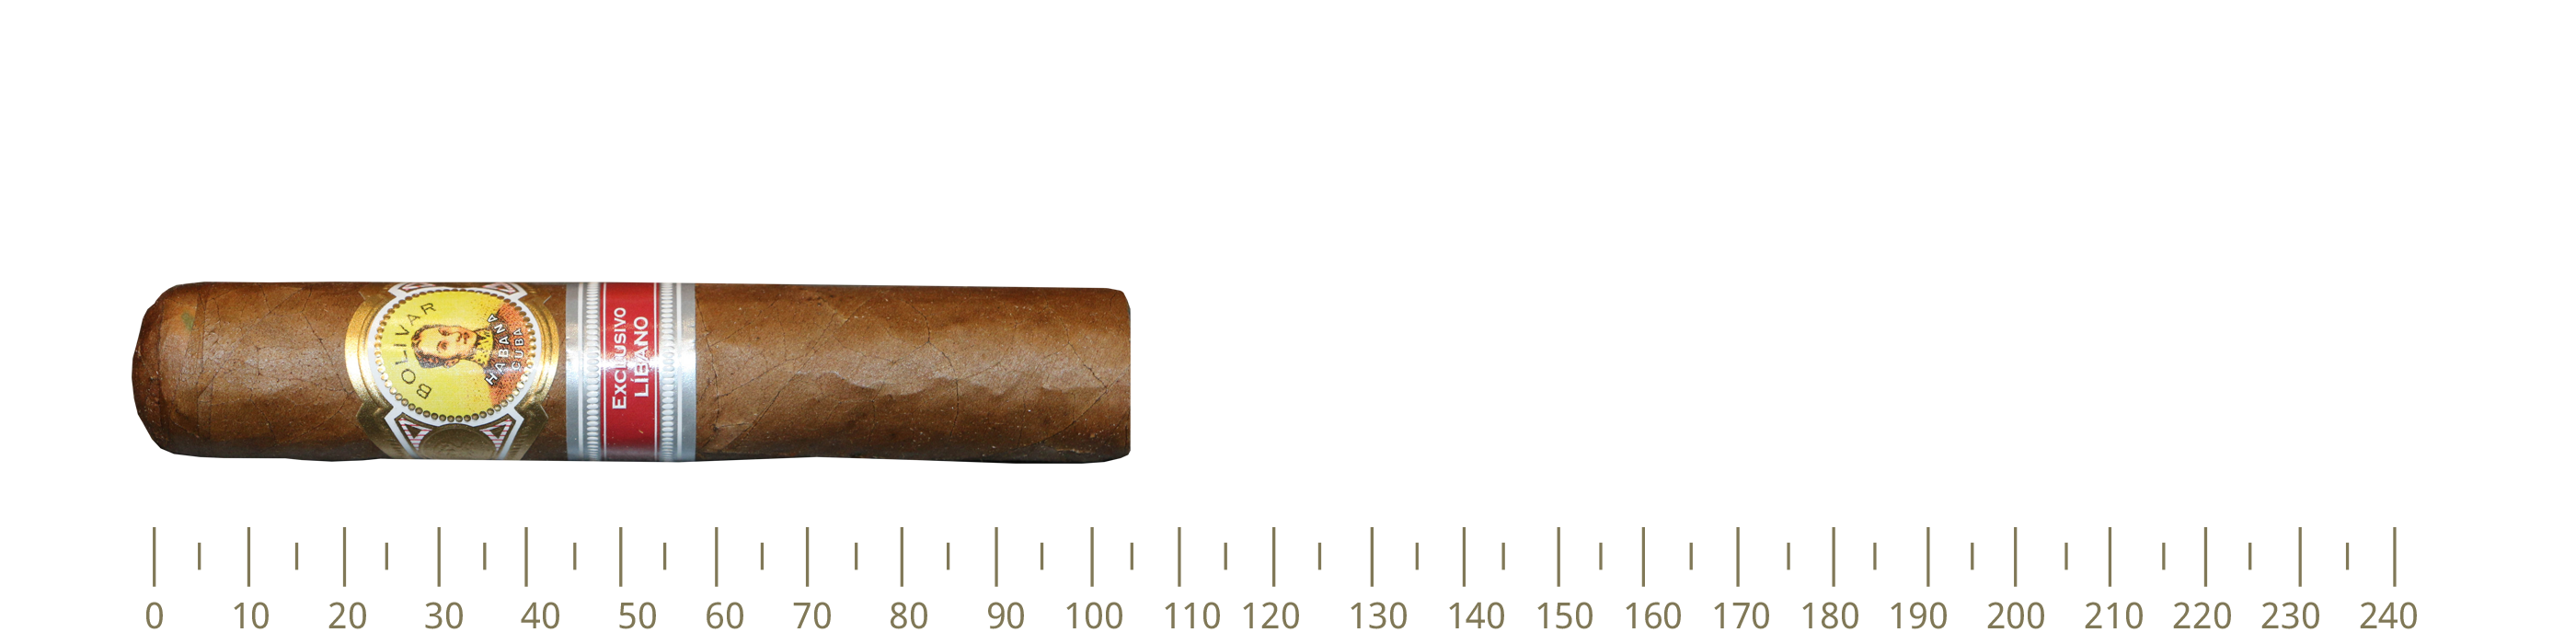 Bolivar Byblos 25 Cigars (RE16)